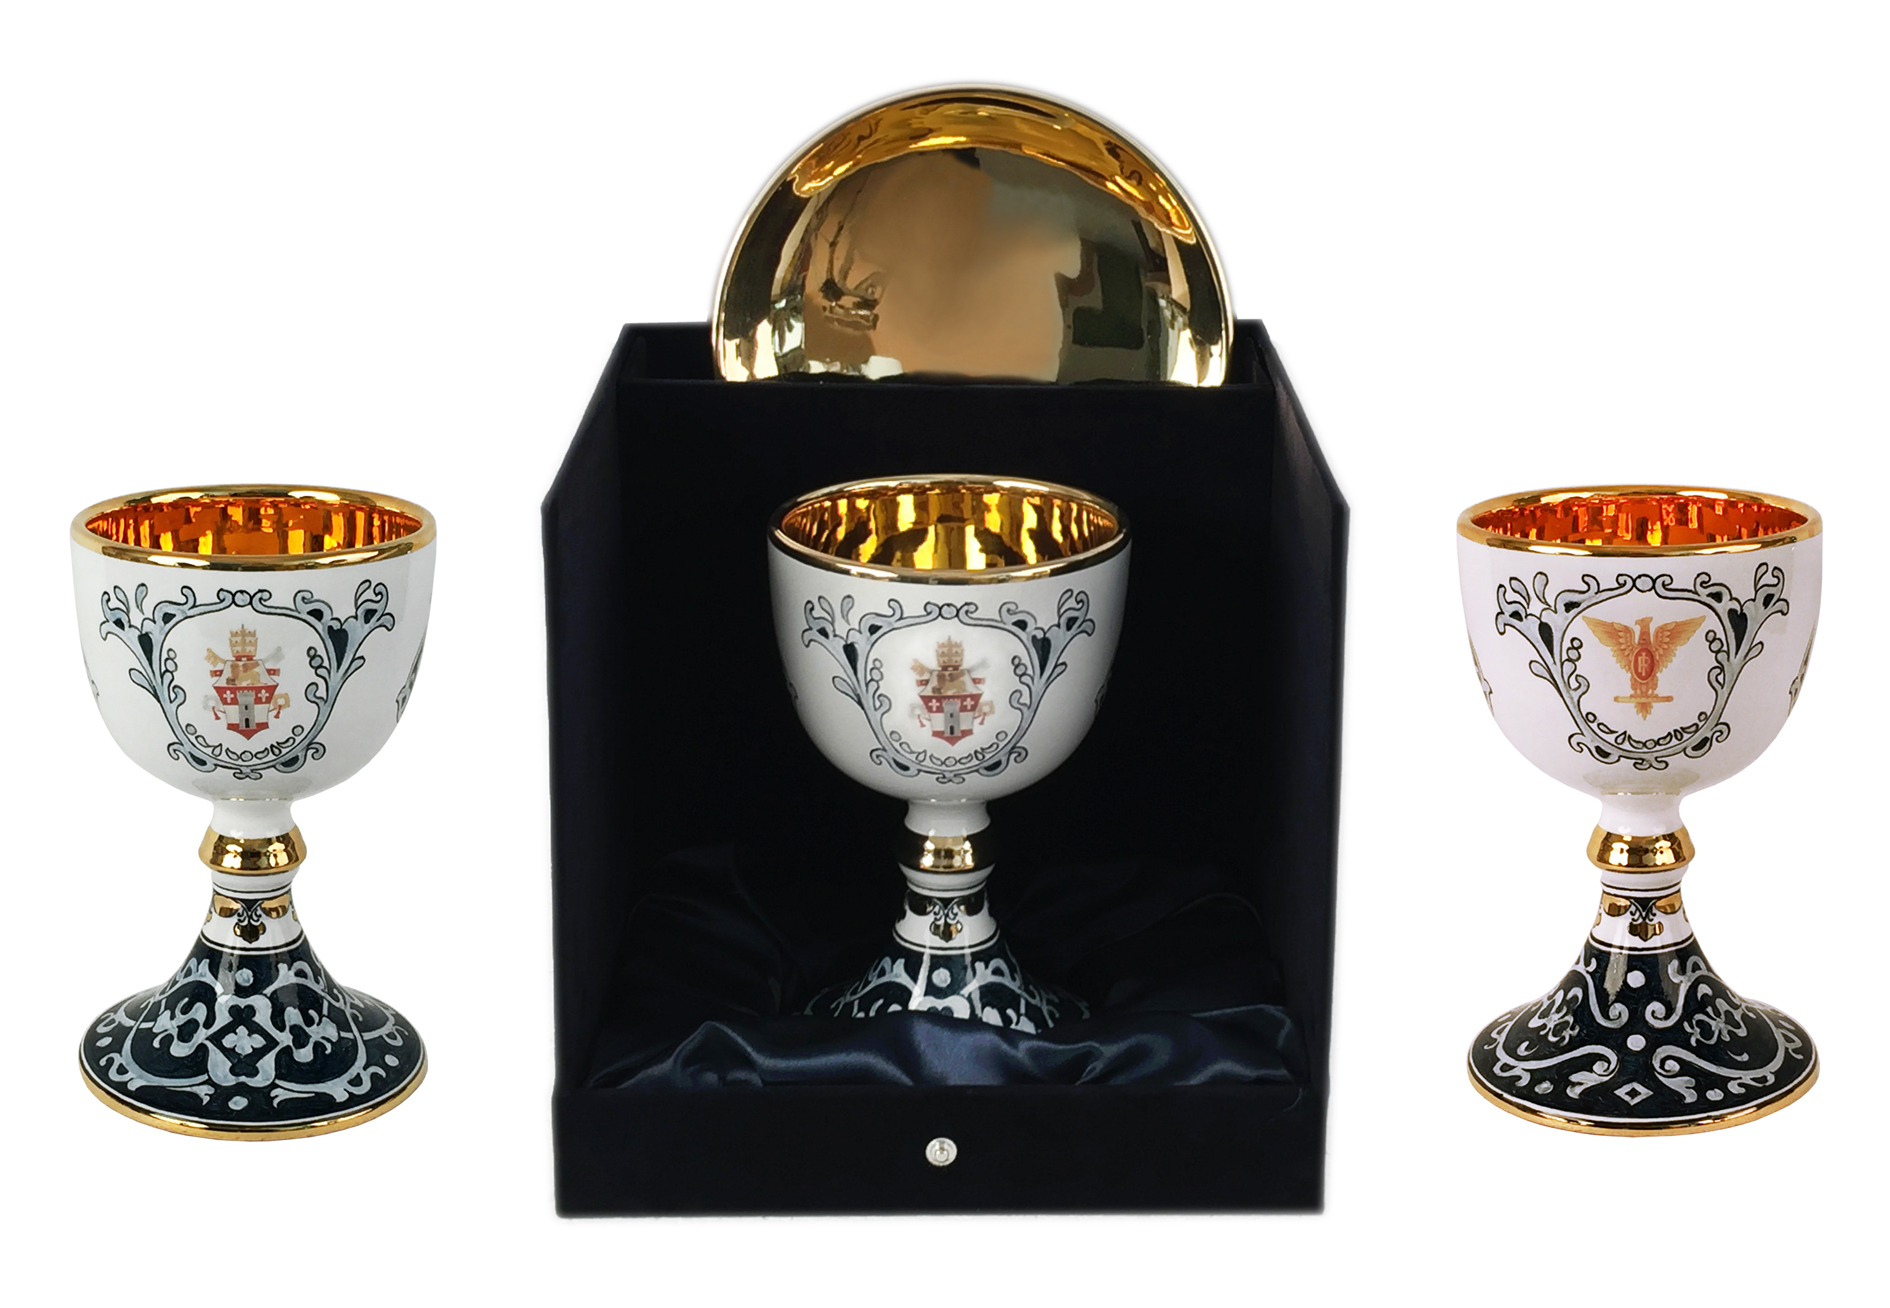 Sambuco Arte Sacra Deruta customized sacred vessels, with gift box